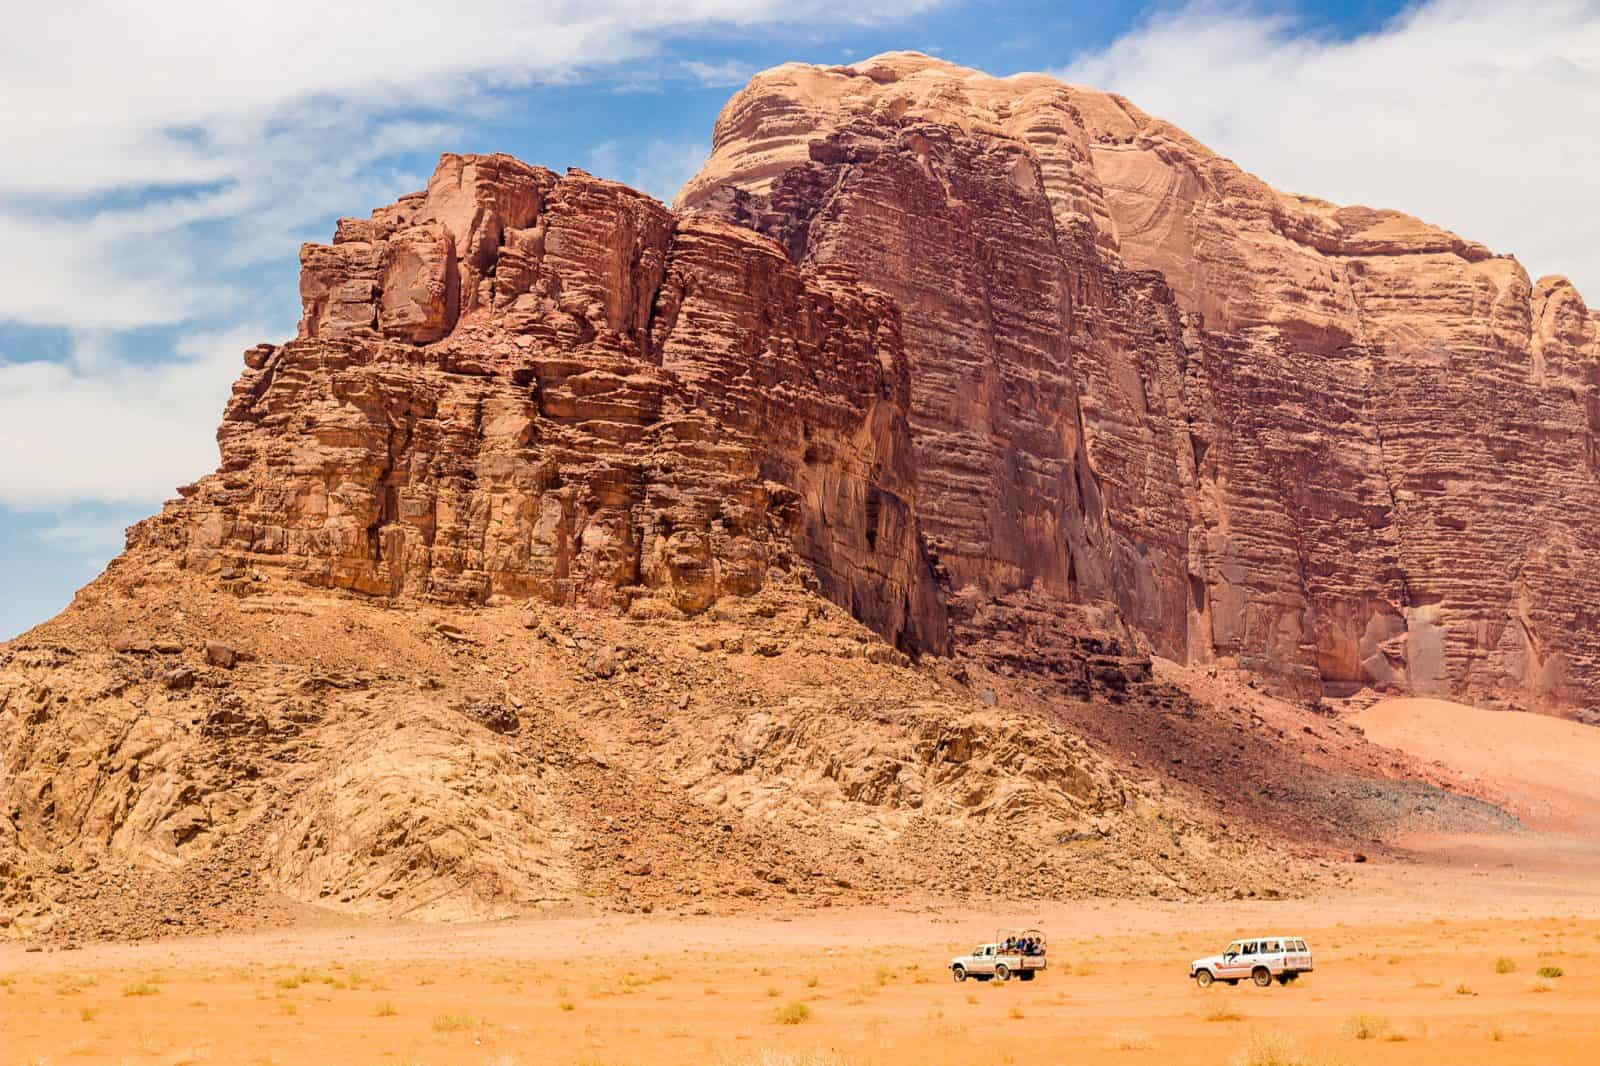 Jeeping in the Jordanian desert. Wadi Rum.